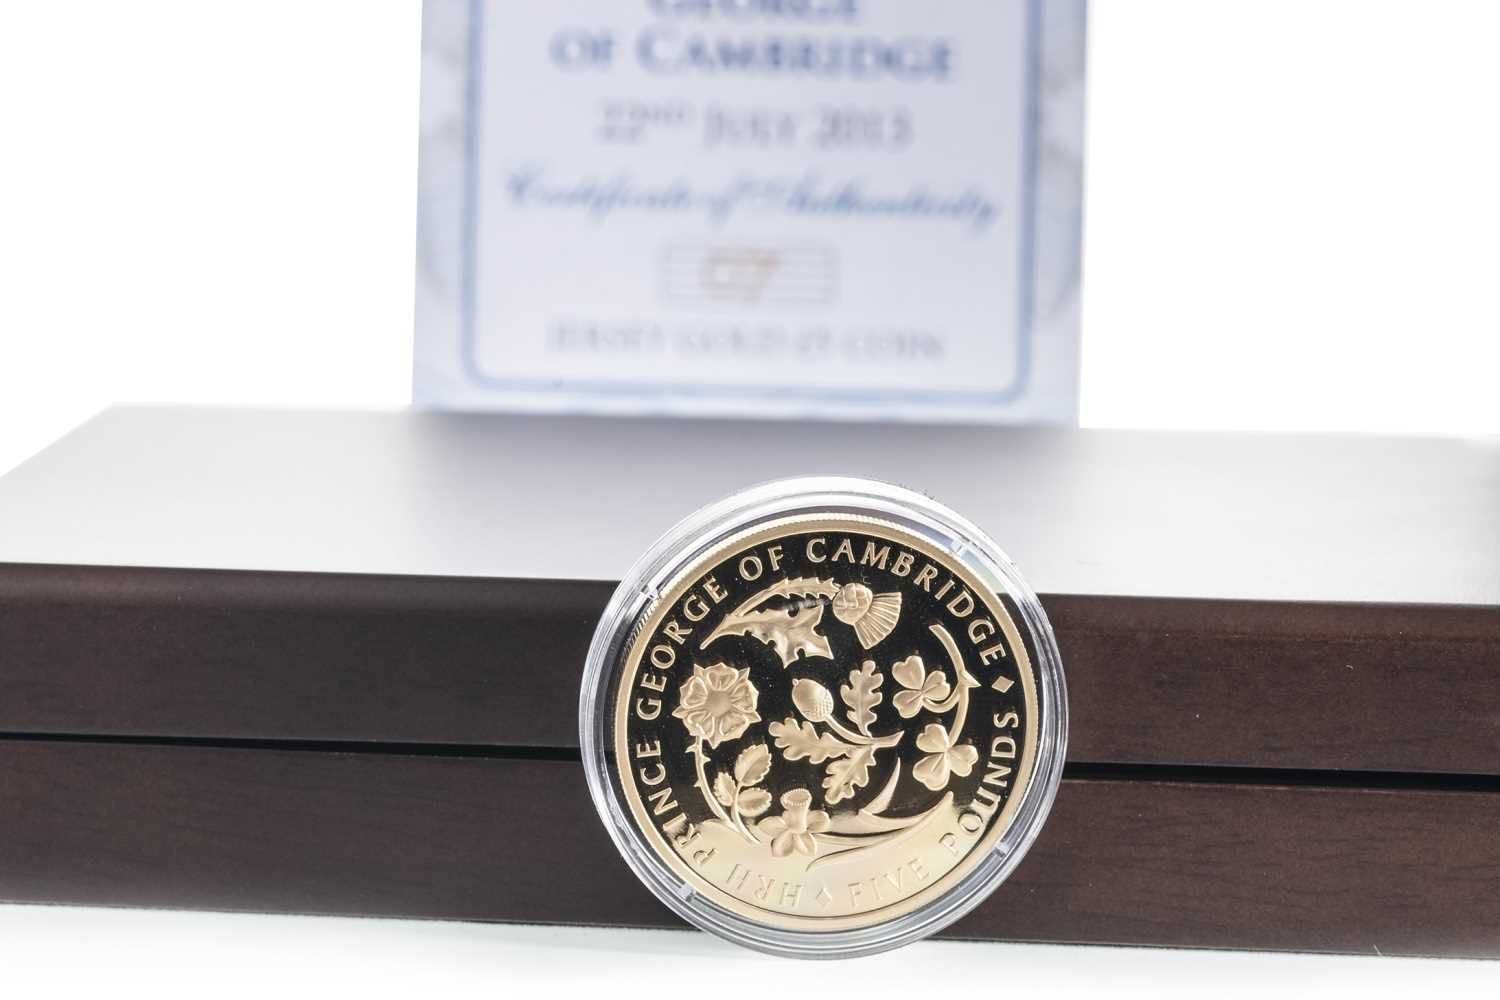 Lot 17-AN HRH PRINCE GEORGE JERSEY GOLD £5 COIN DATED 2013